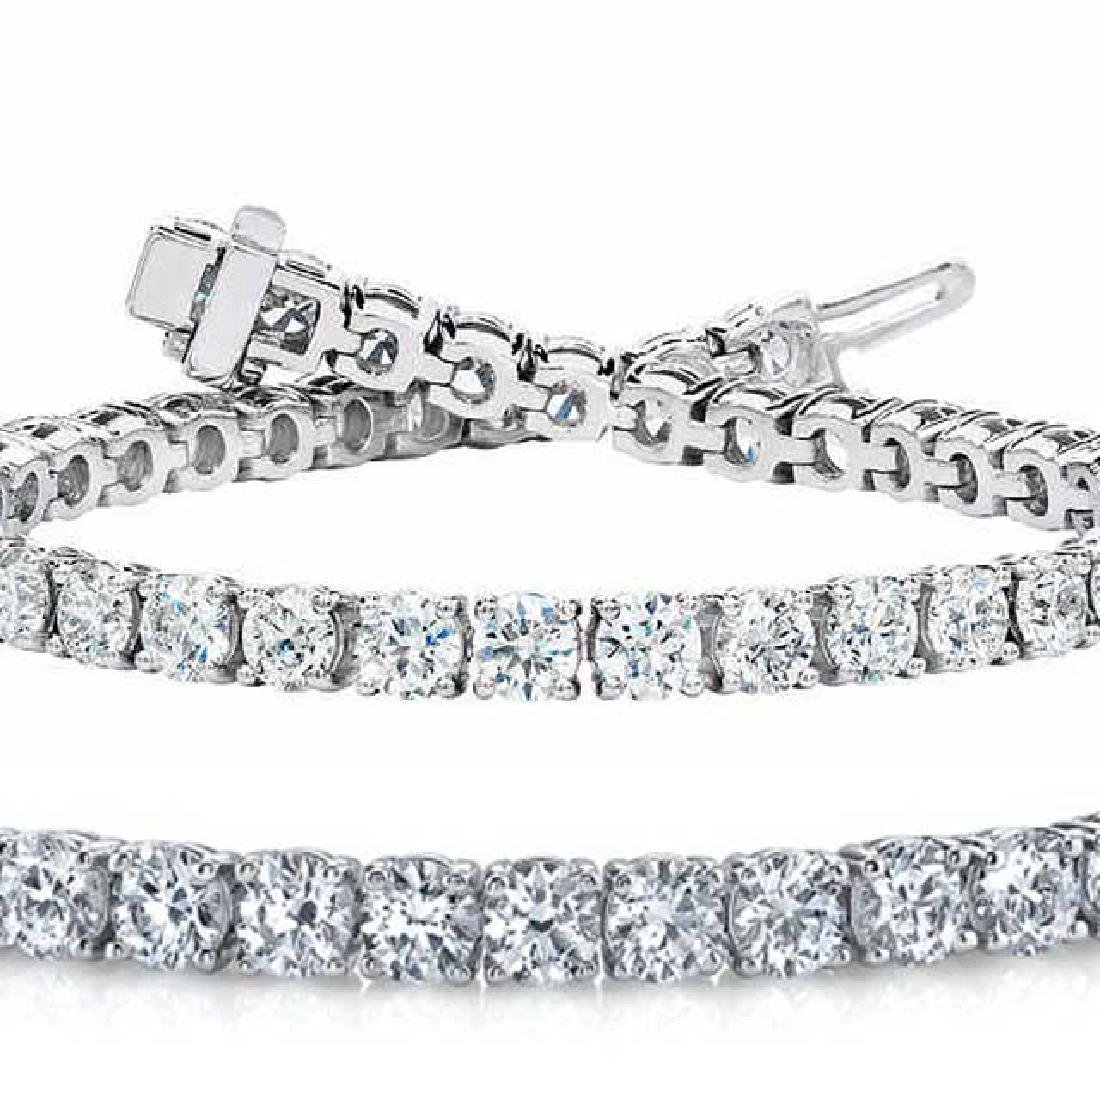 Natural 6ct VS-SI Diamond Tennis Bracelet Platinum -